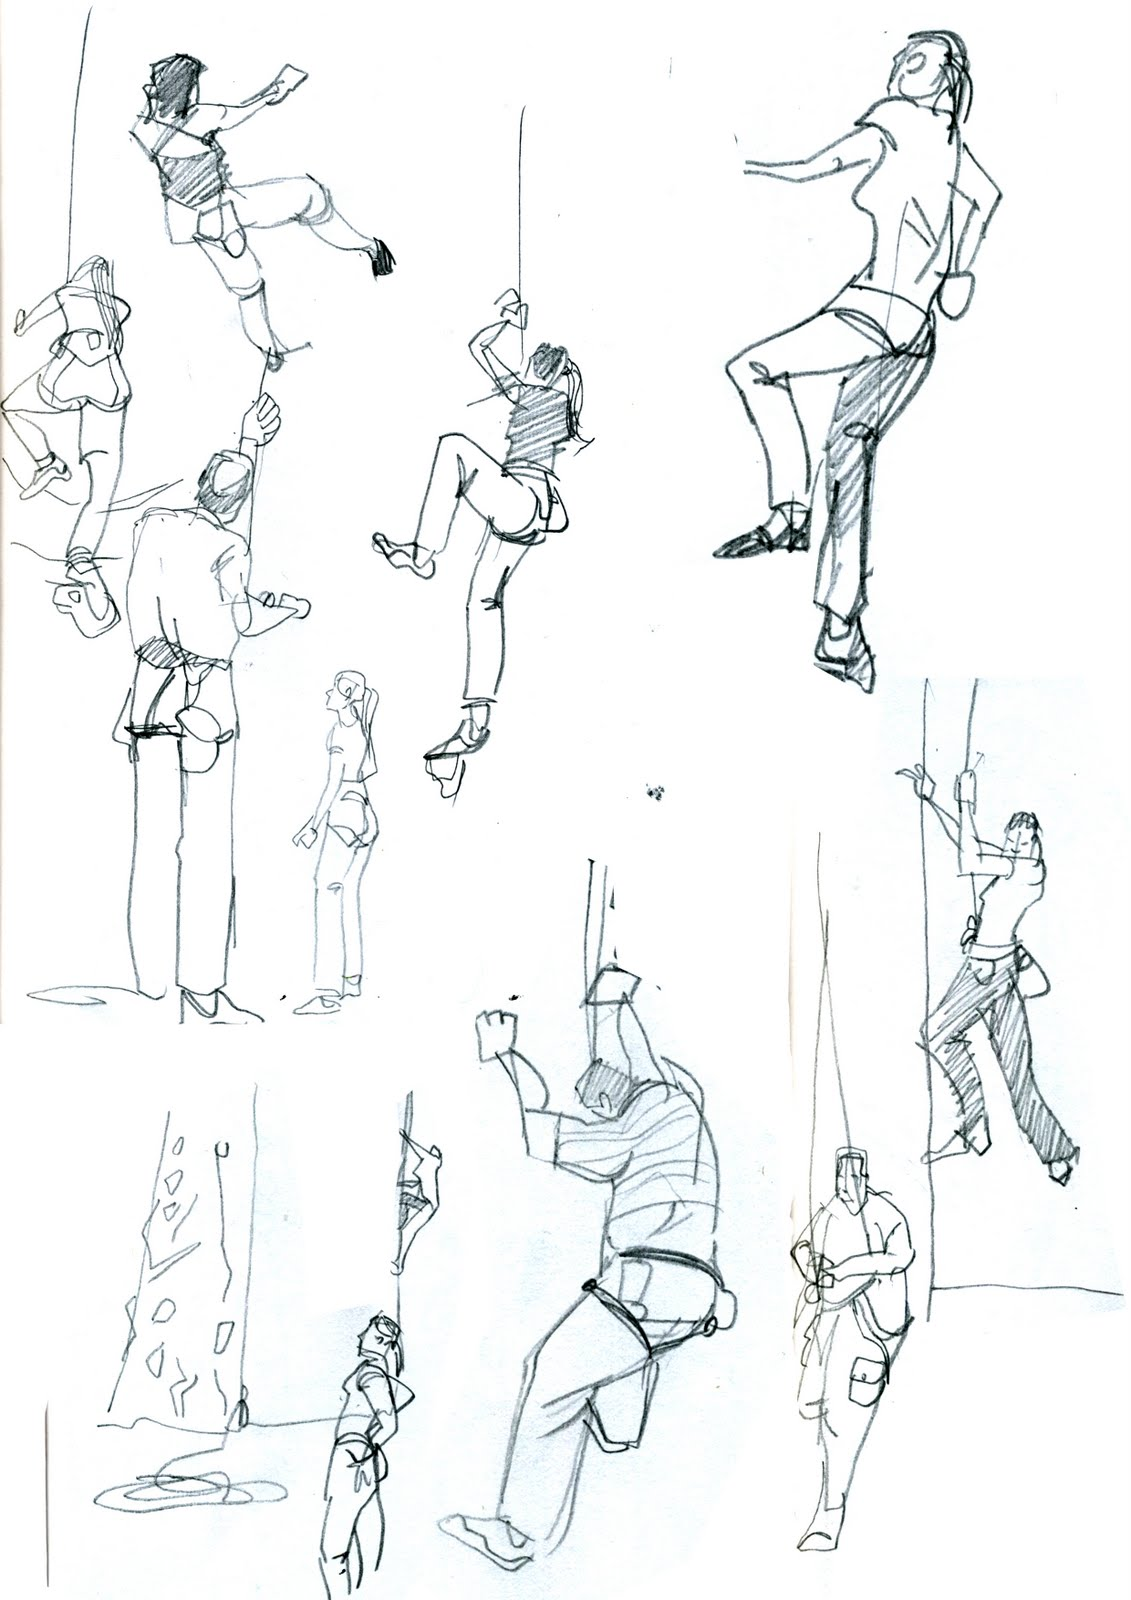 My Sketchblog: Climbing sketches